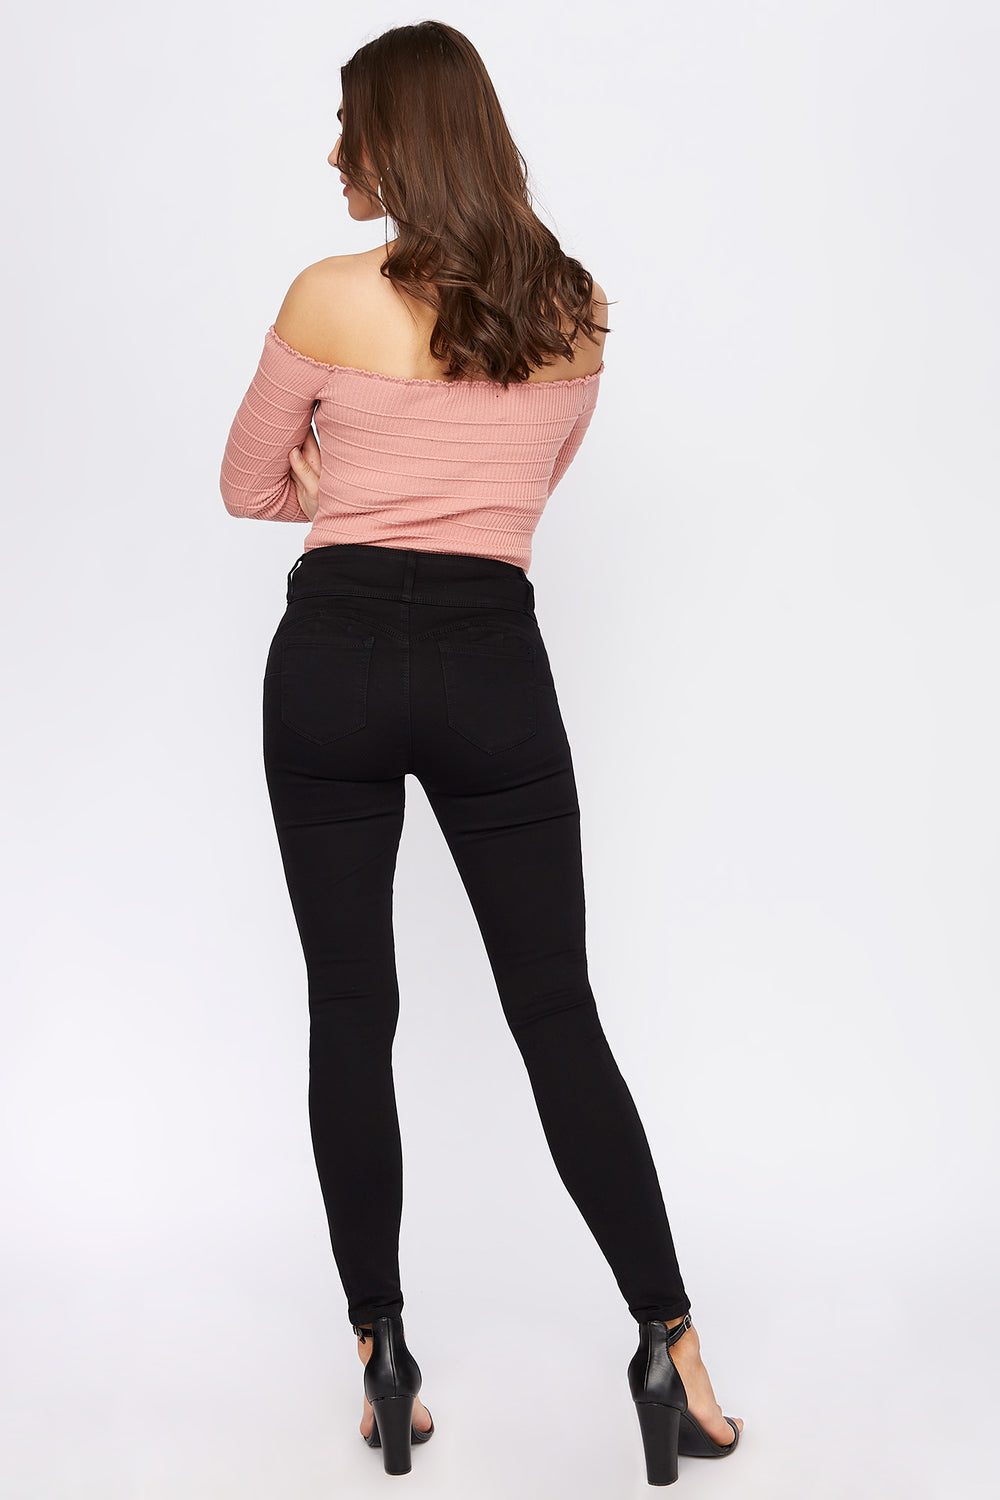 Butt, I Love You 3-Tier High Rise Push-Up Skinny Jean Black